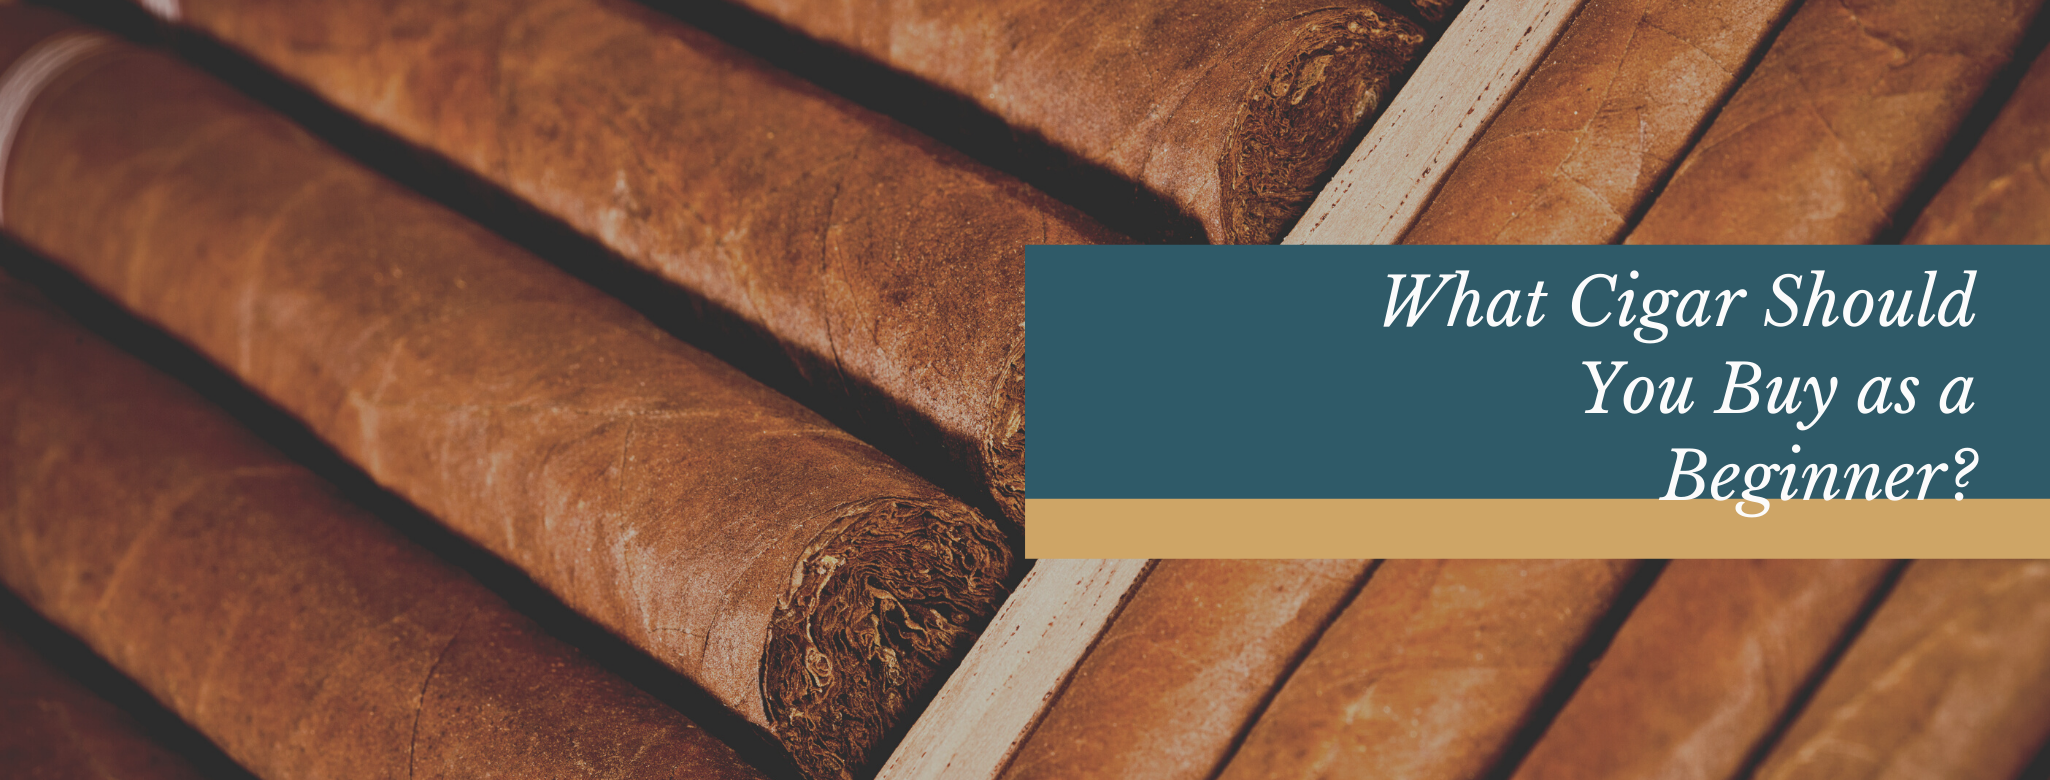 Reads: What Cigar Should You Buy as  a Beginner?